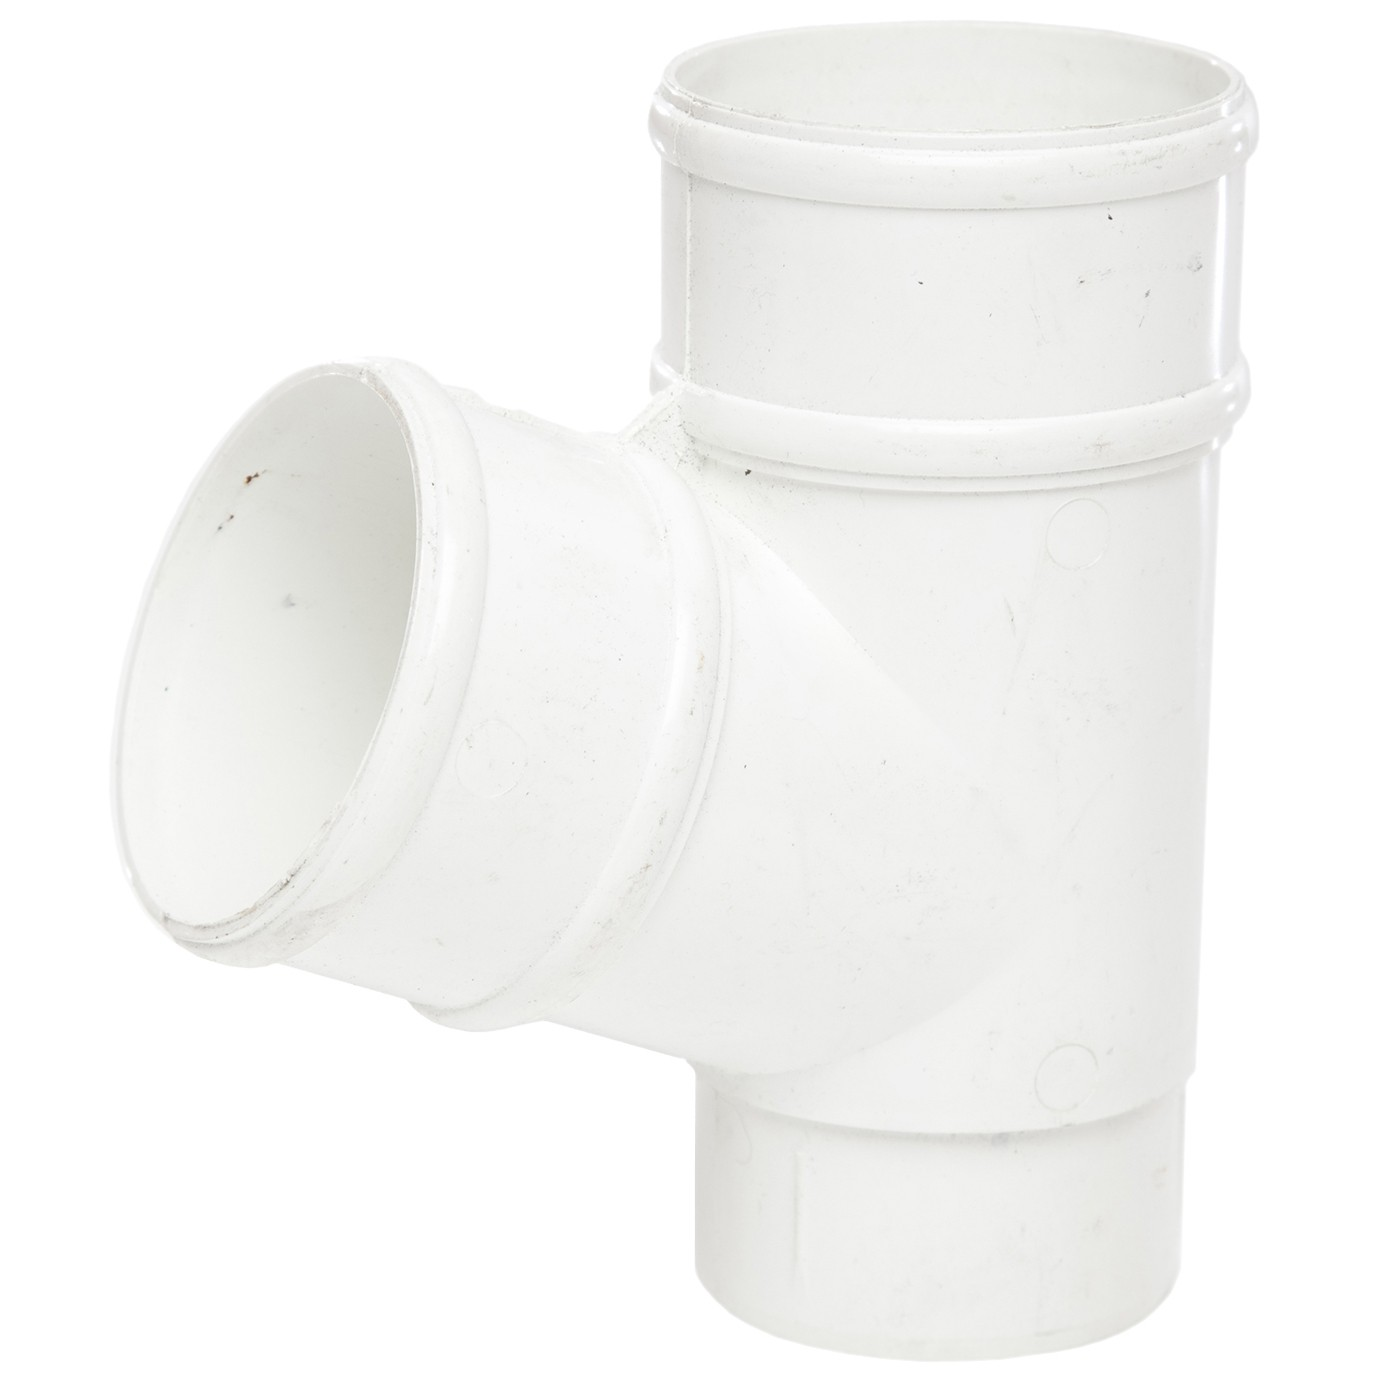 Polypipe 68mm Round Down Pipe 112.5 Degree Branch - White